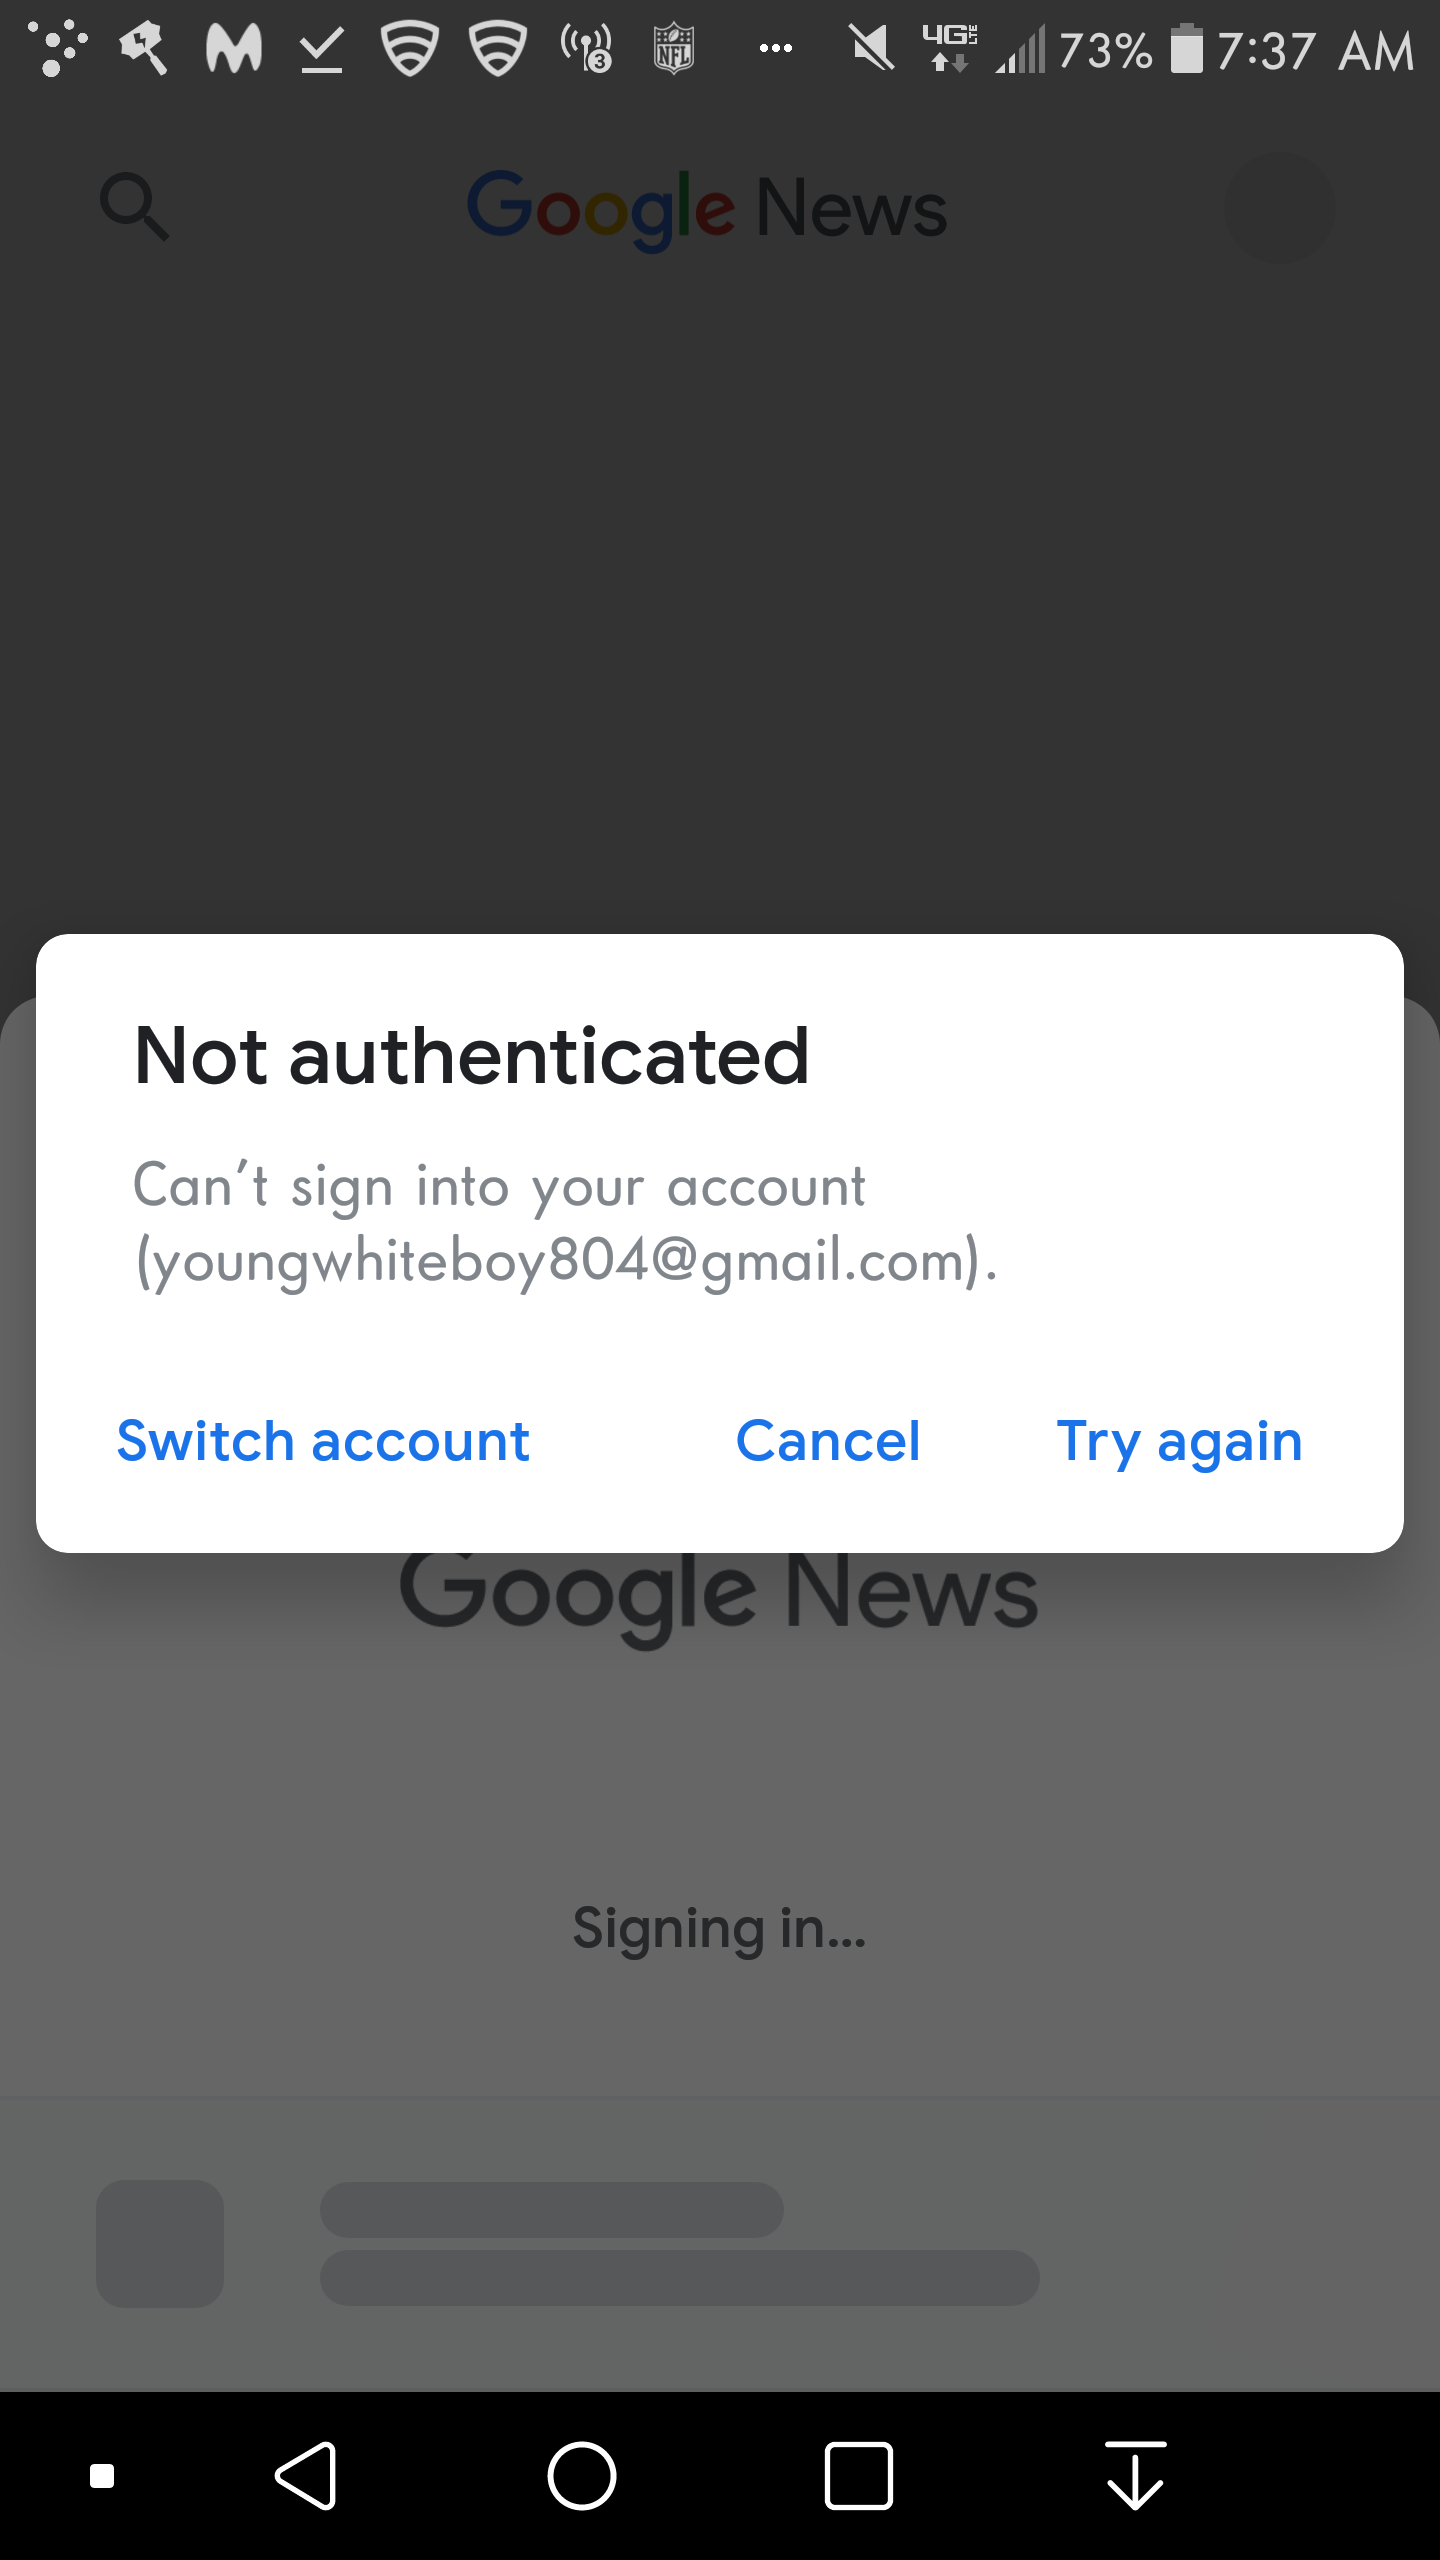 I can't sign in Google News Android App  It can't authenticate my